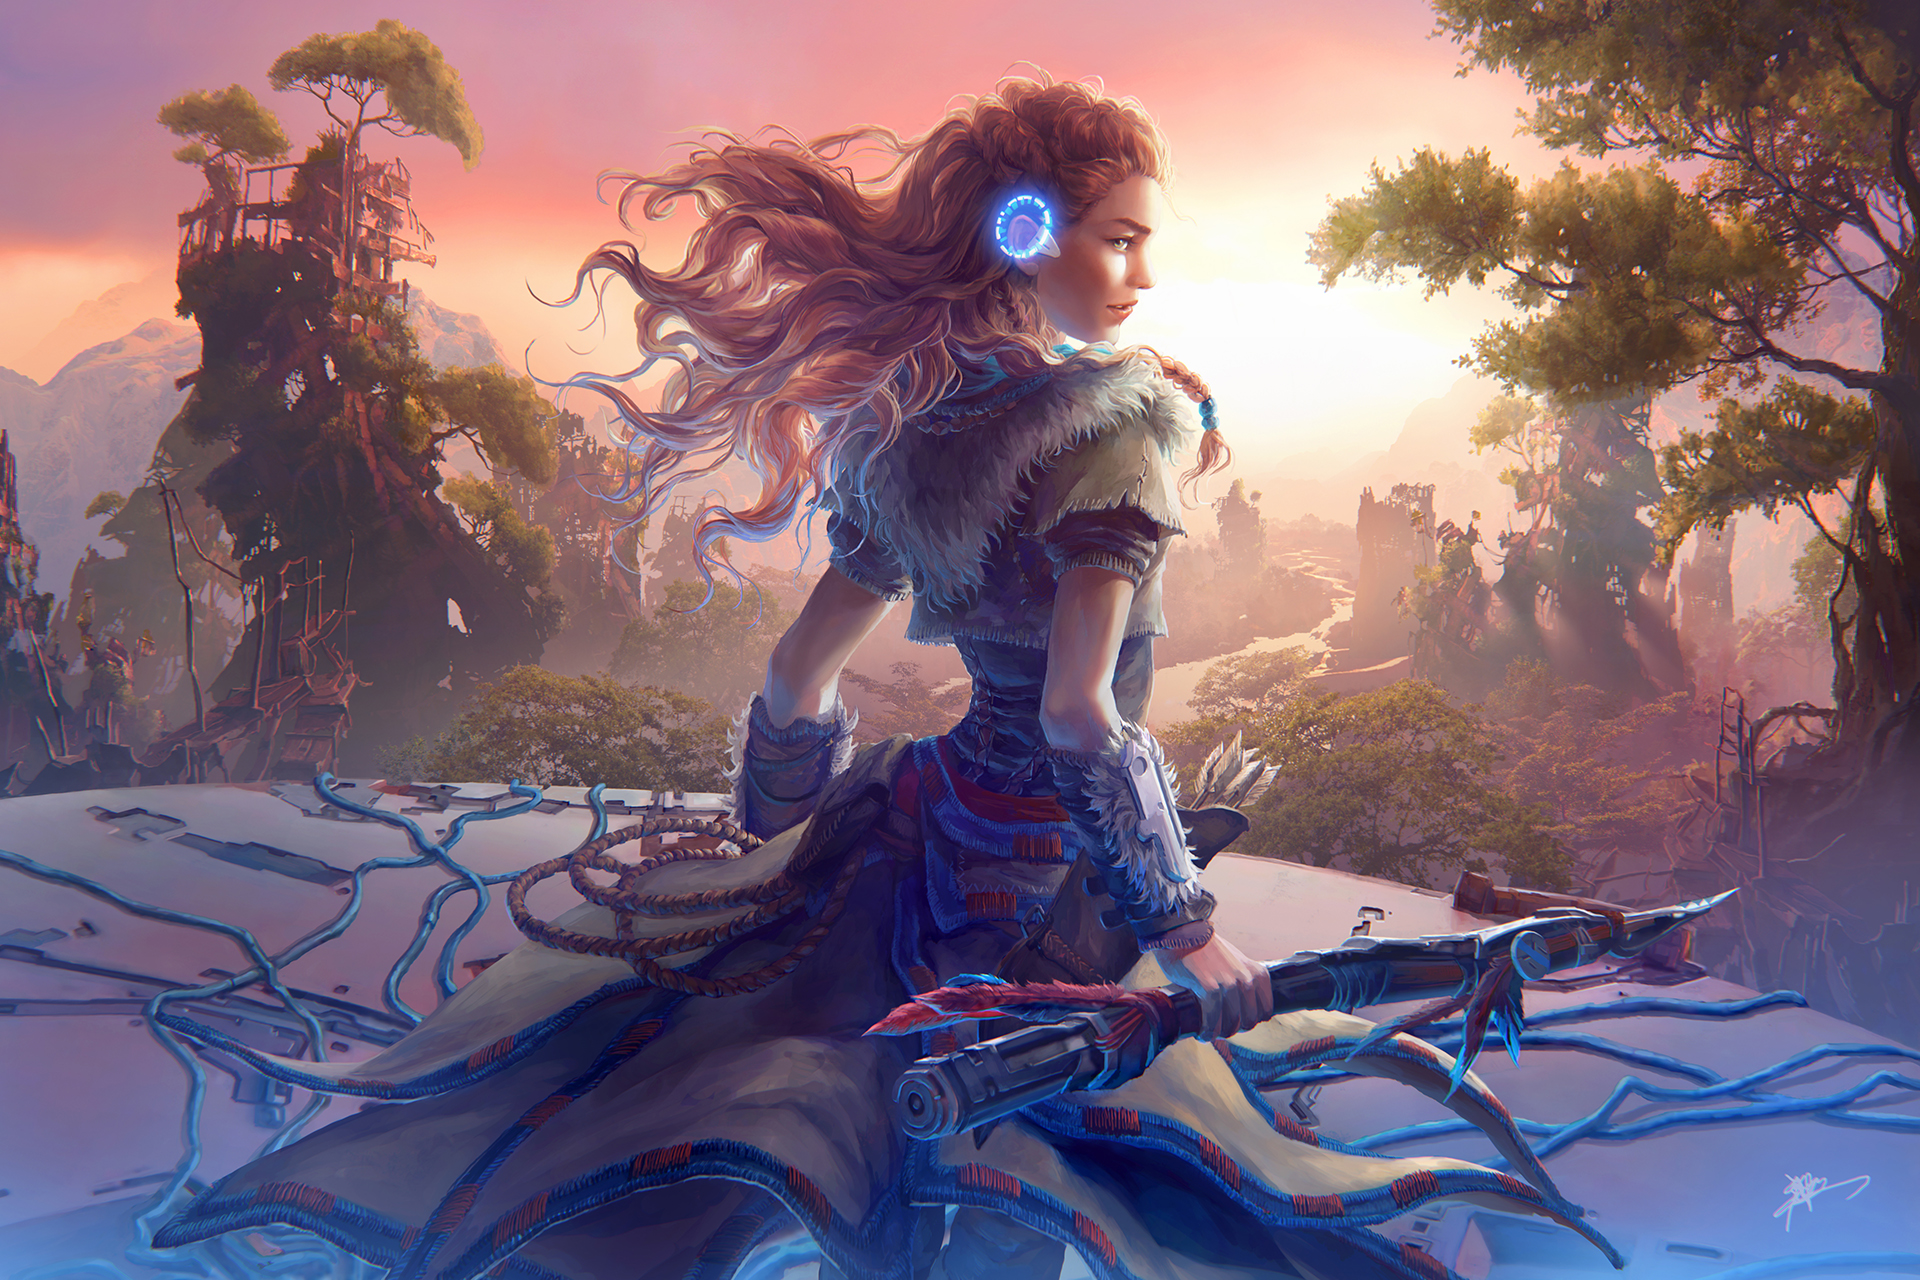 Aloy horizon zero dawn game artwork hd games 4k - Horizon zero dawn android wallpaper ...